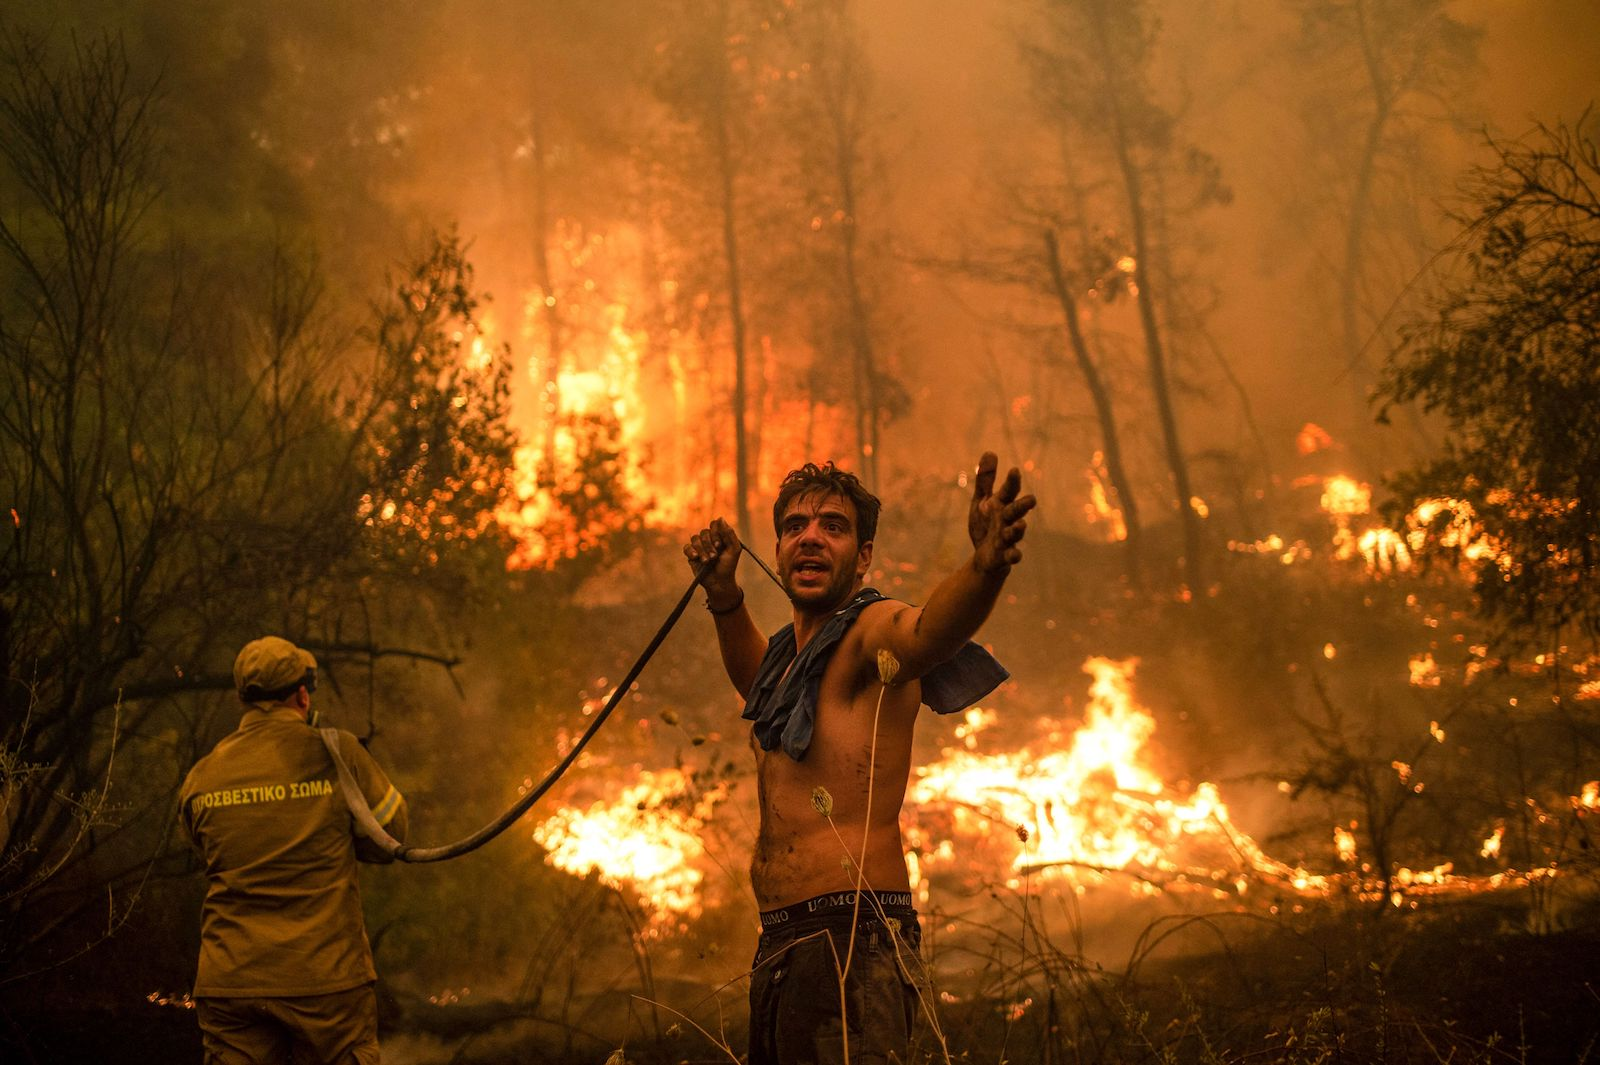 a shirtless man holding a fire hose gestures at the viewer as wildfires blaze behind him